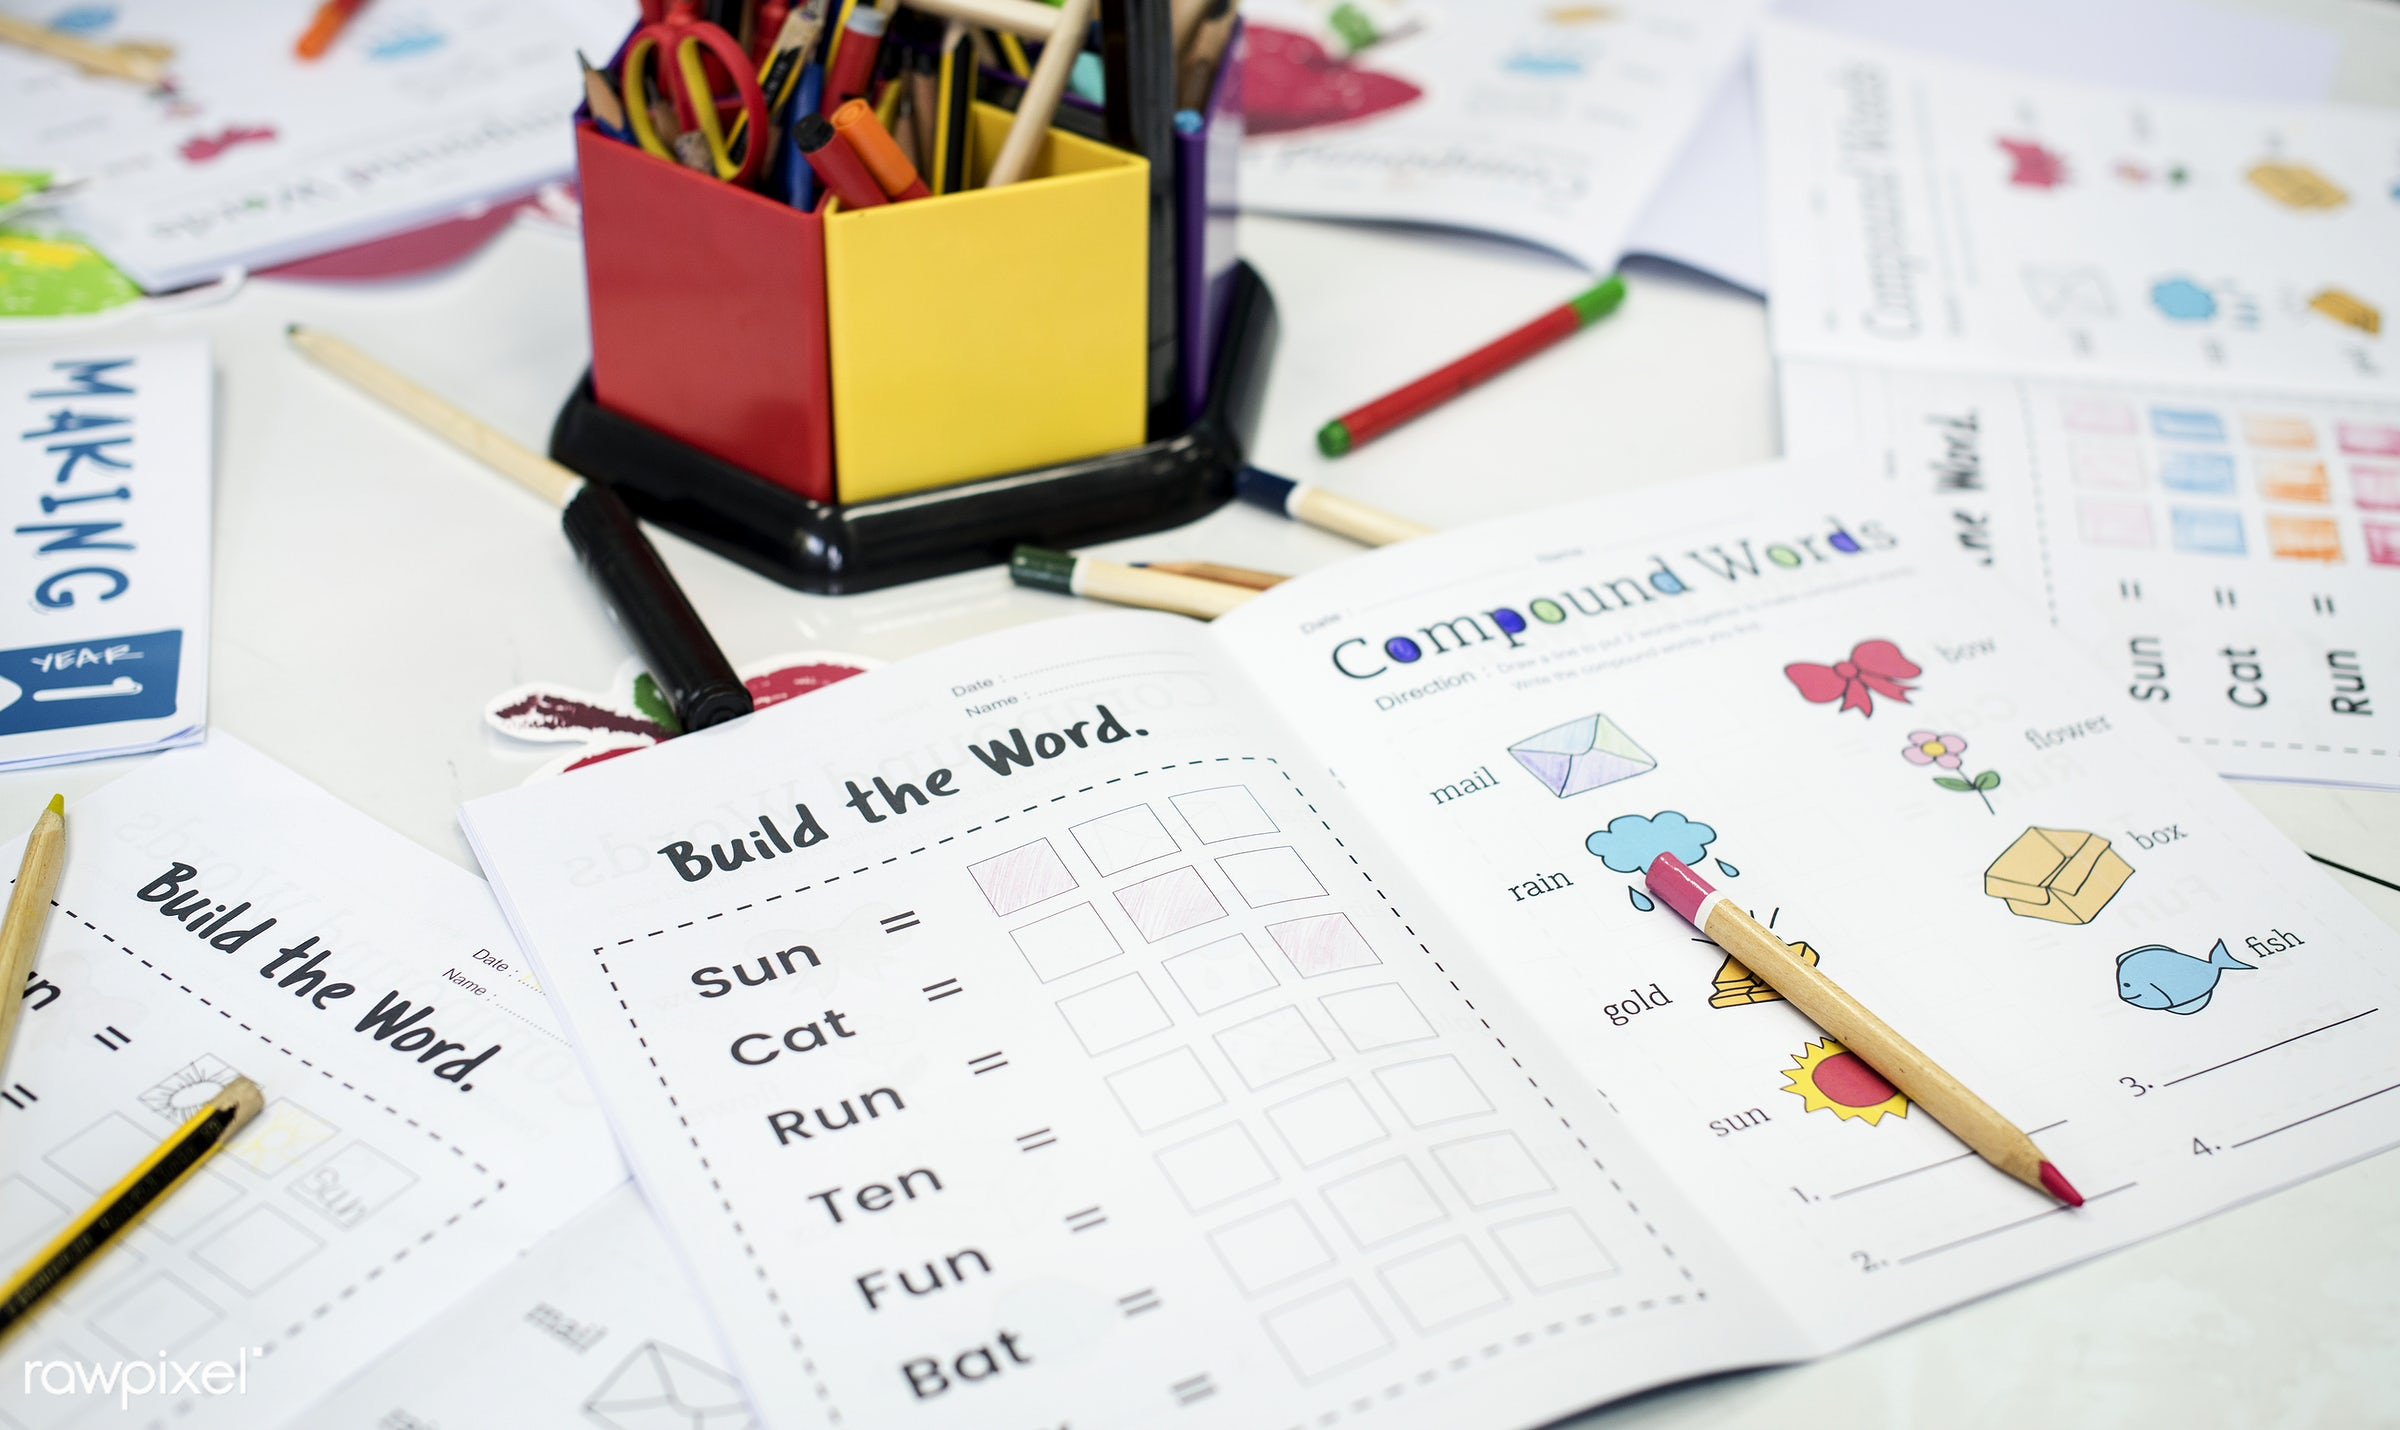 Elementary school classroom - nobody, arts, children, colored pencils, together, words, workbook, hands, painting, students...